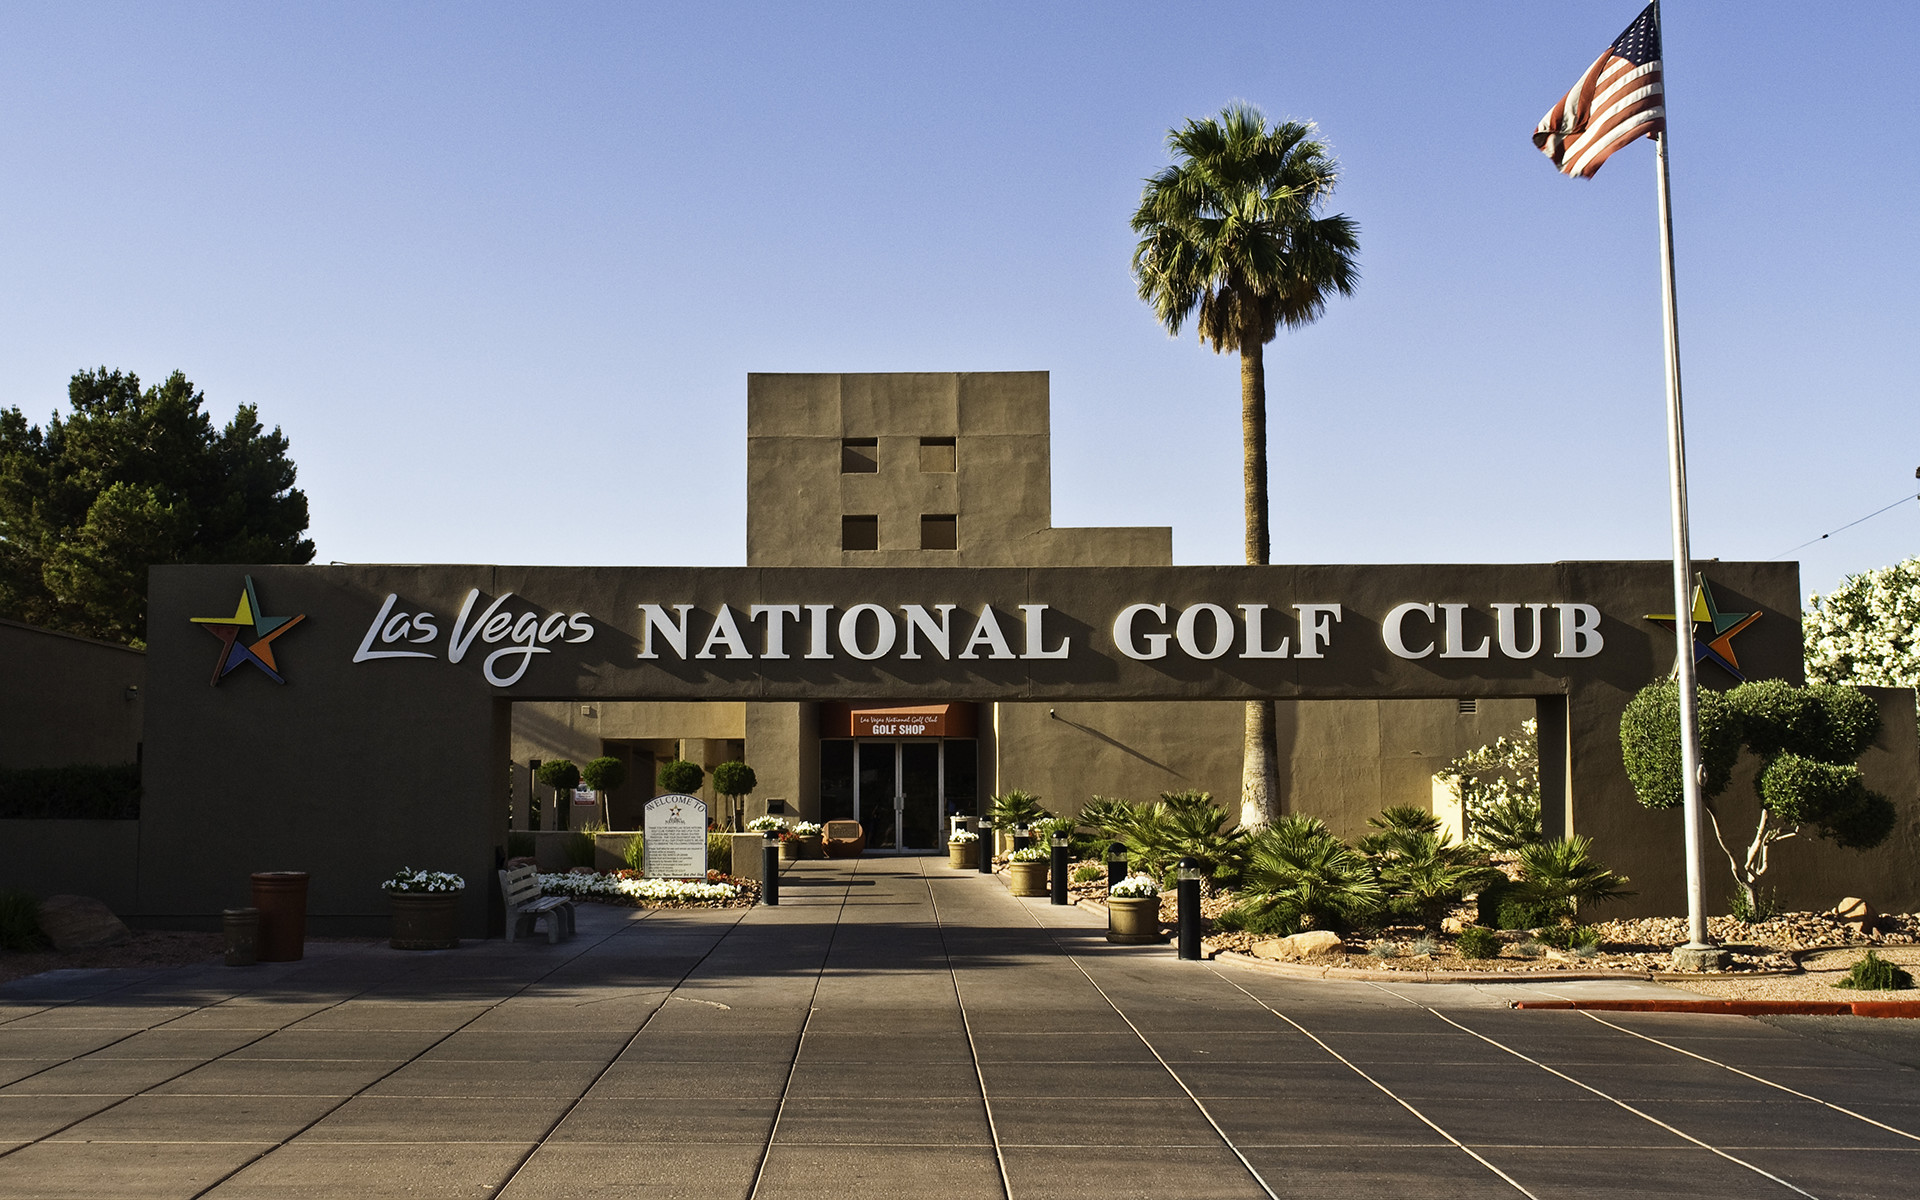 Las Vegas National Golf Club